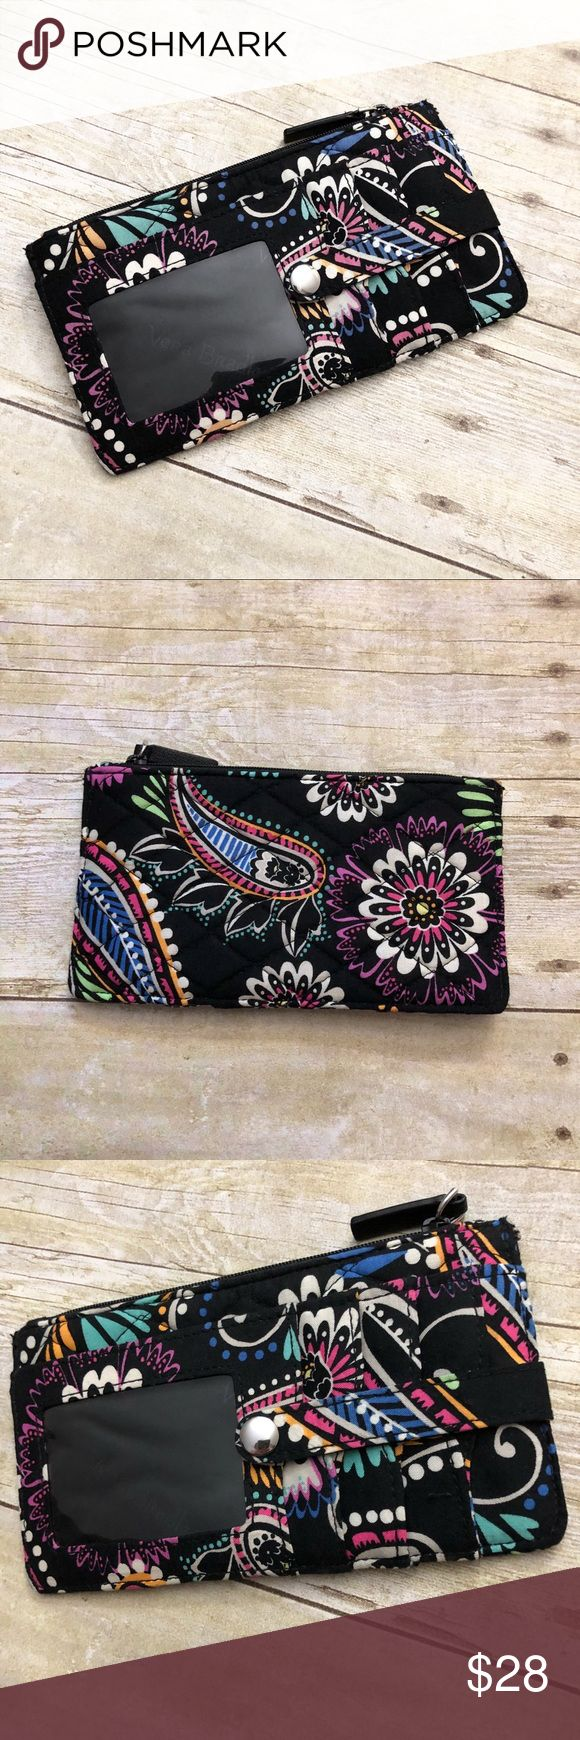 "Vera Bradley Skinny Wallet in Bandana Swirl. NWOT Never used. New without tags. Vera Bradley. Black paisley print. Skinny wallet. 1 long slip pocket, 1 long zip-close pocket, an ID holder and 3 card slots with button closure. Measurements shown in last photos.  ❌ No trades or off Poshmark transactions.   👌🏻Quick shipping.   💁🏻Offers welcome through ""Make an Offer"" feature.   👗👠 Bundle discount.   ❔ Feel free to ask any questions. Vera Bradley Bags Wallets"